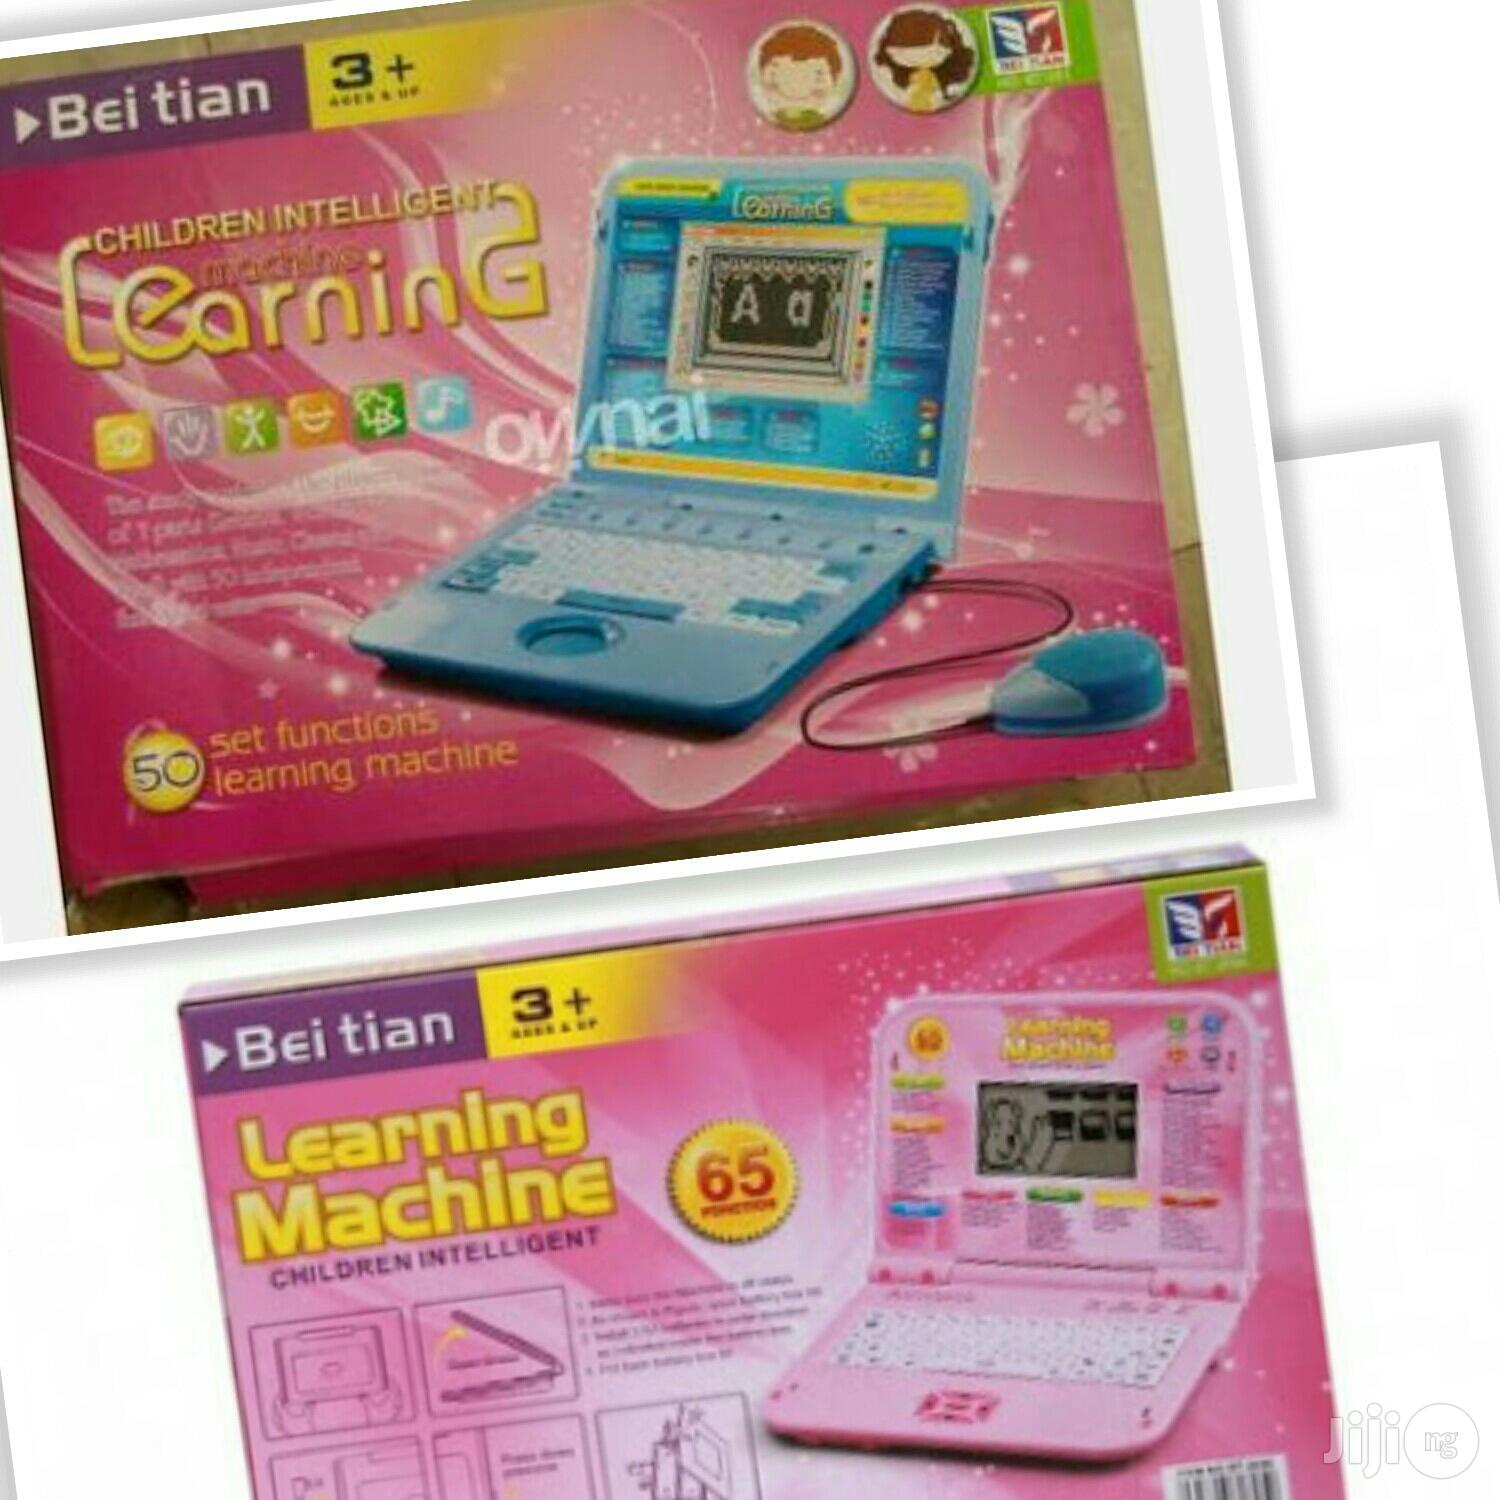 Archive: Beitian Children Learning Laptop (Wholesale and Retail)